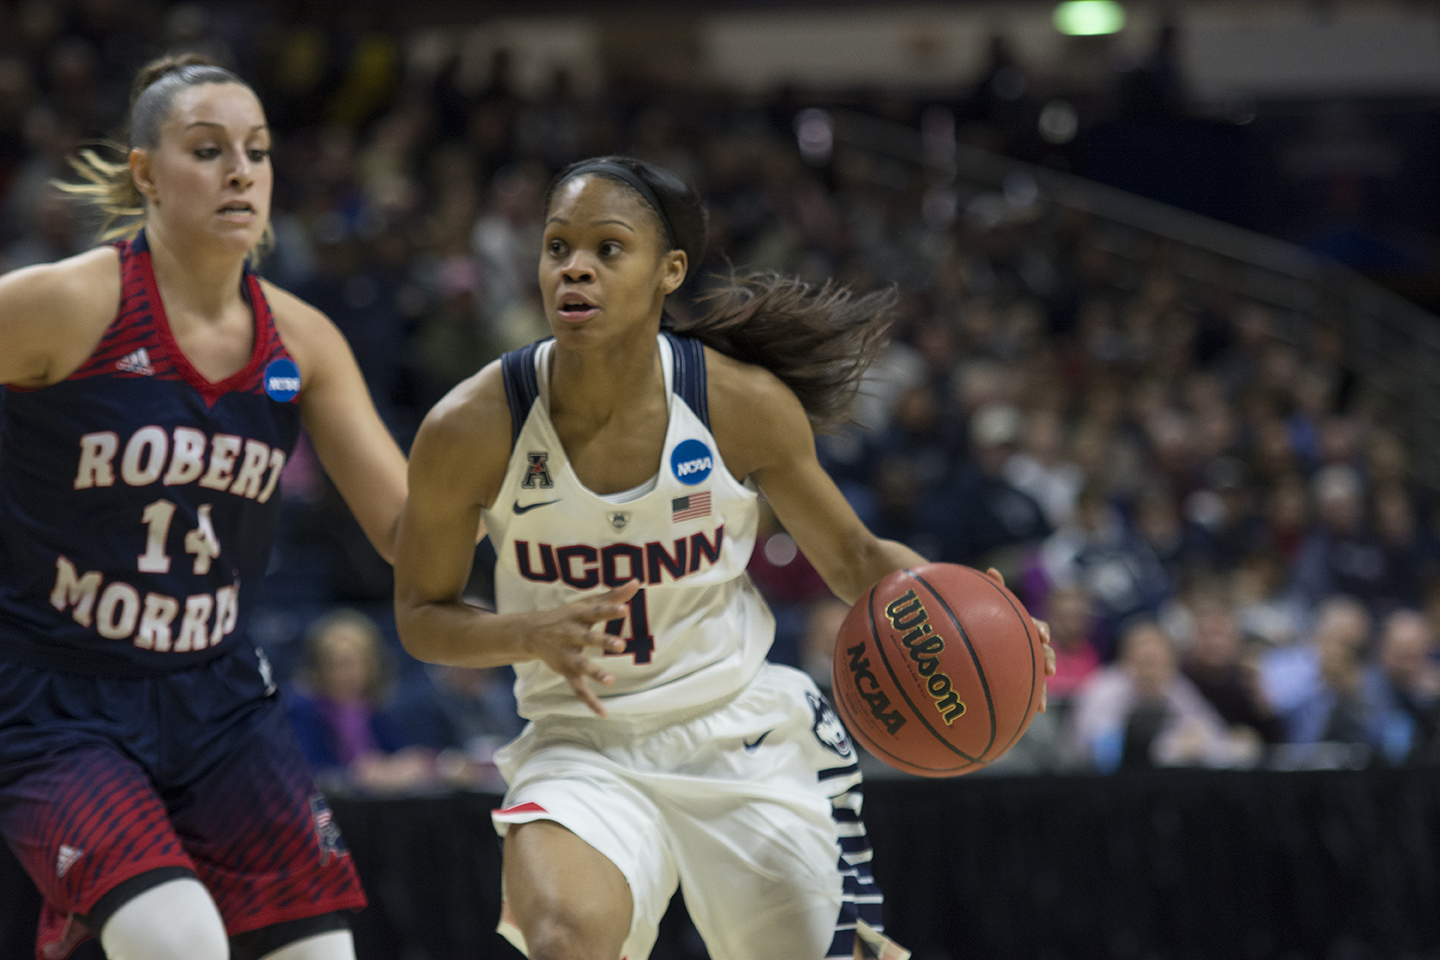 Moriah Jefferson drives to the basket during UConn's 101-49 victory over Robert Morris in the first round of the NCAA tournament at Gampel Pavilion on Saturday March 19, 2016. (Bailey Wright/The Daily Campus)